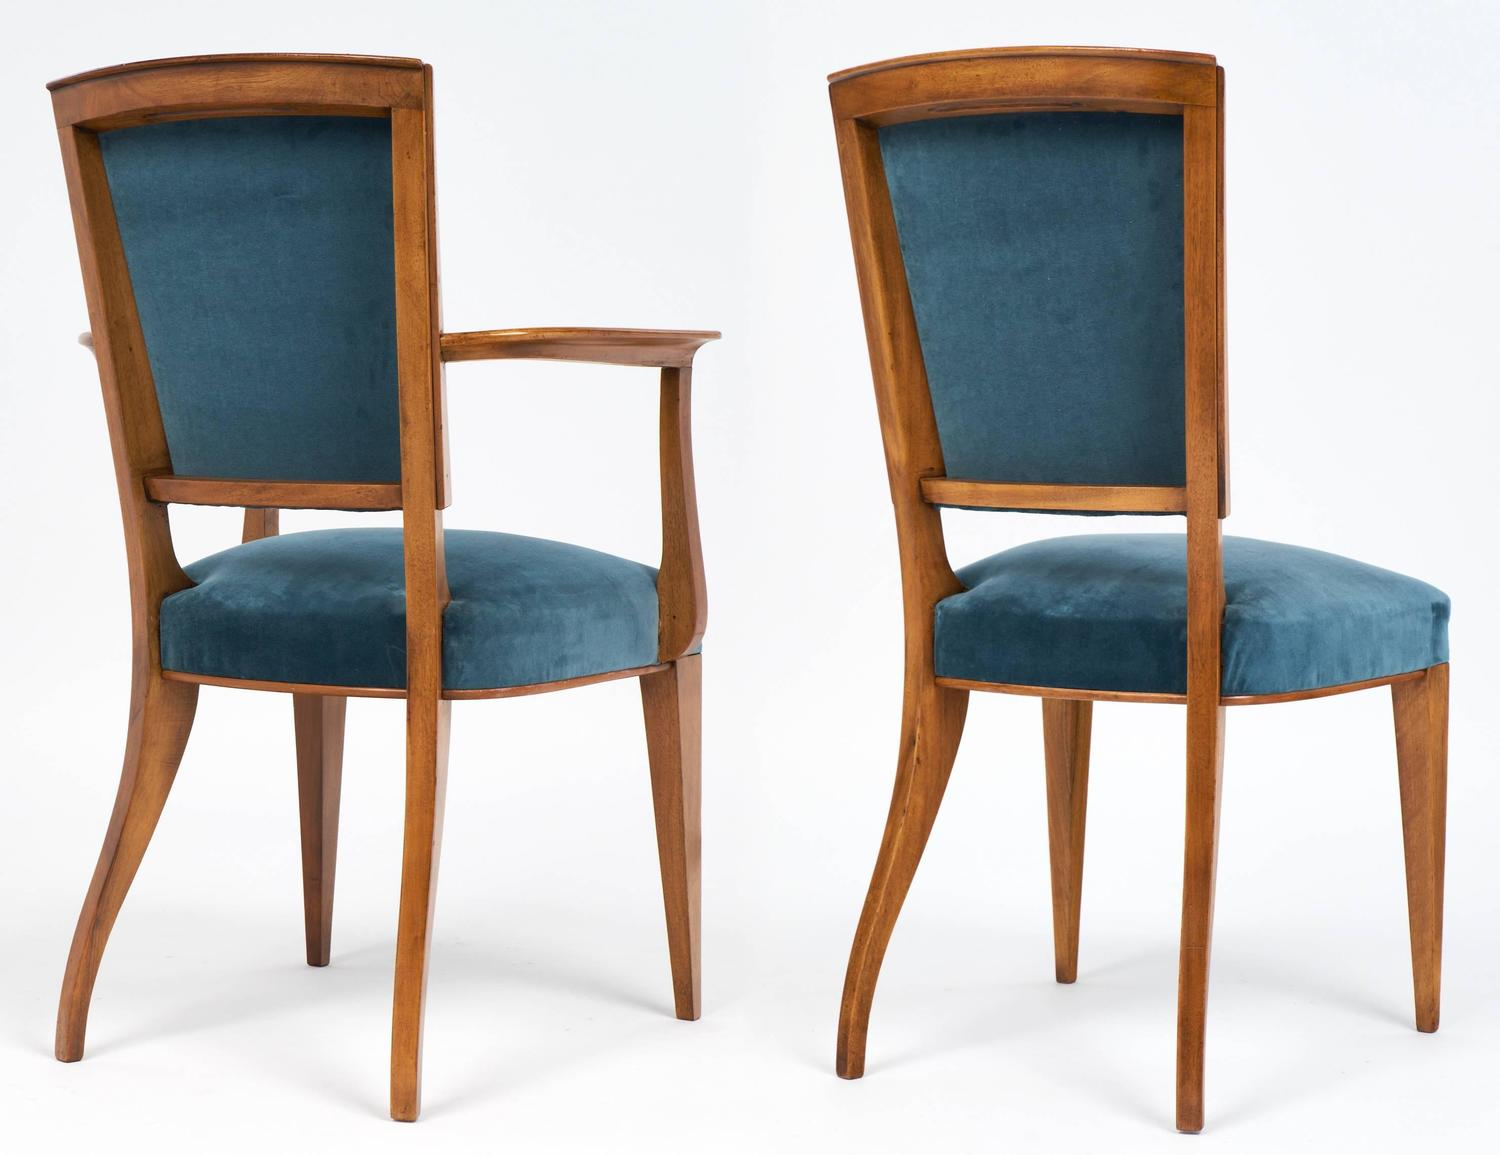 French Art Deco Set Of Cherrywood Dining Room Chairs For Sale At 1stdibs